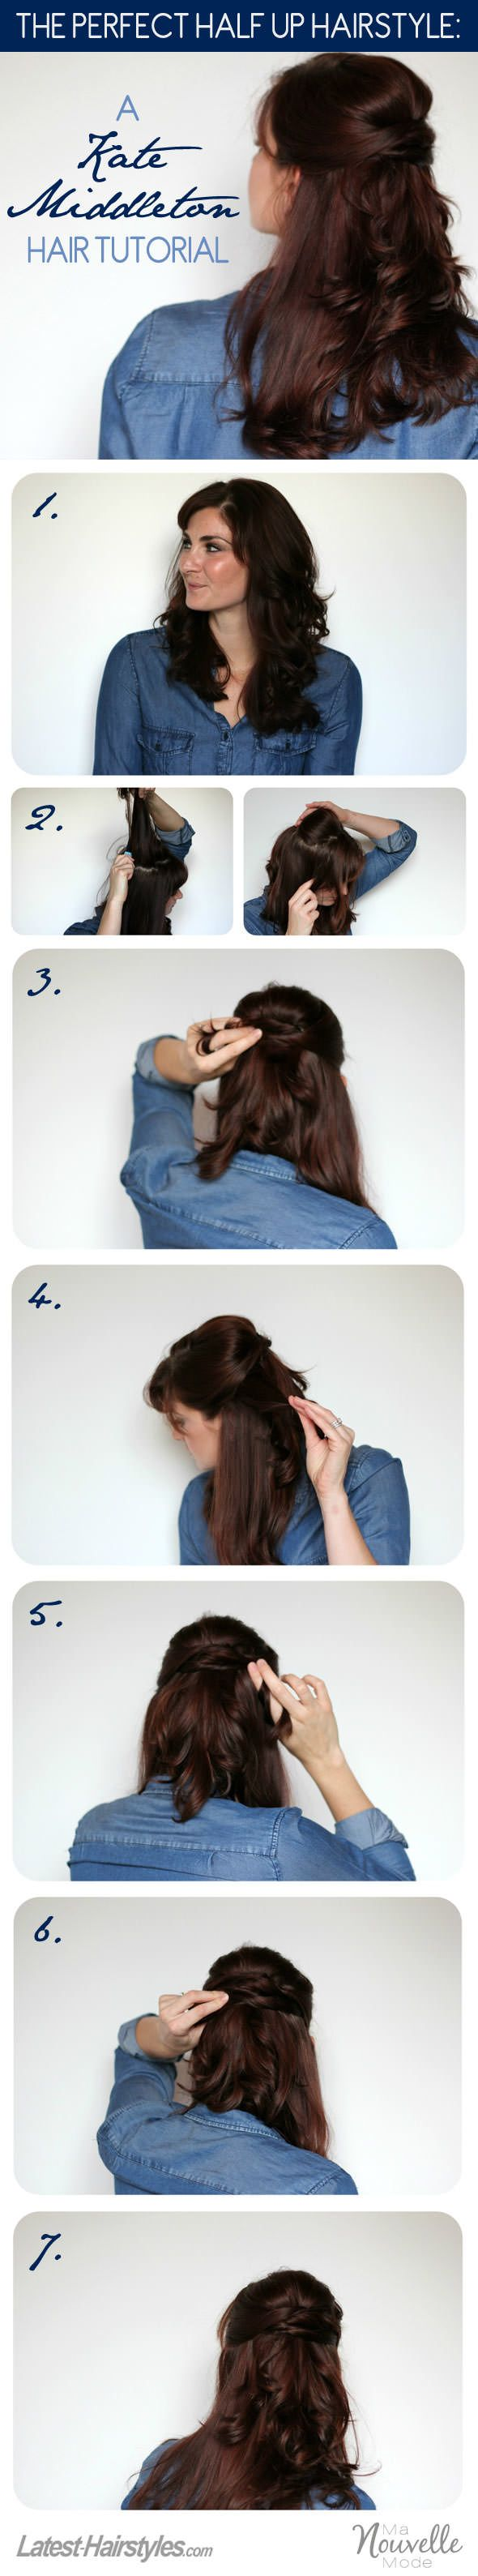 A Kate Middleton Hair Tutorial: Her Famous Half Up Hairstyle